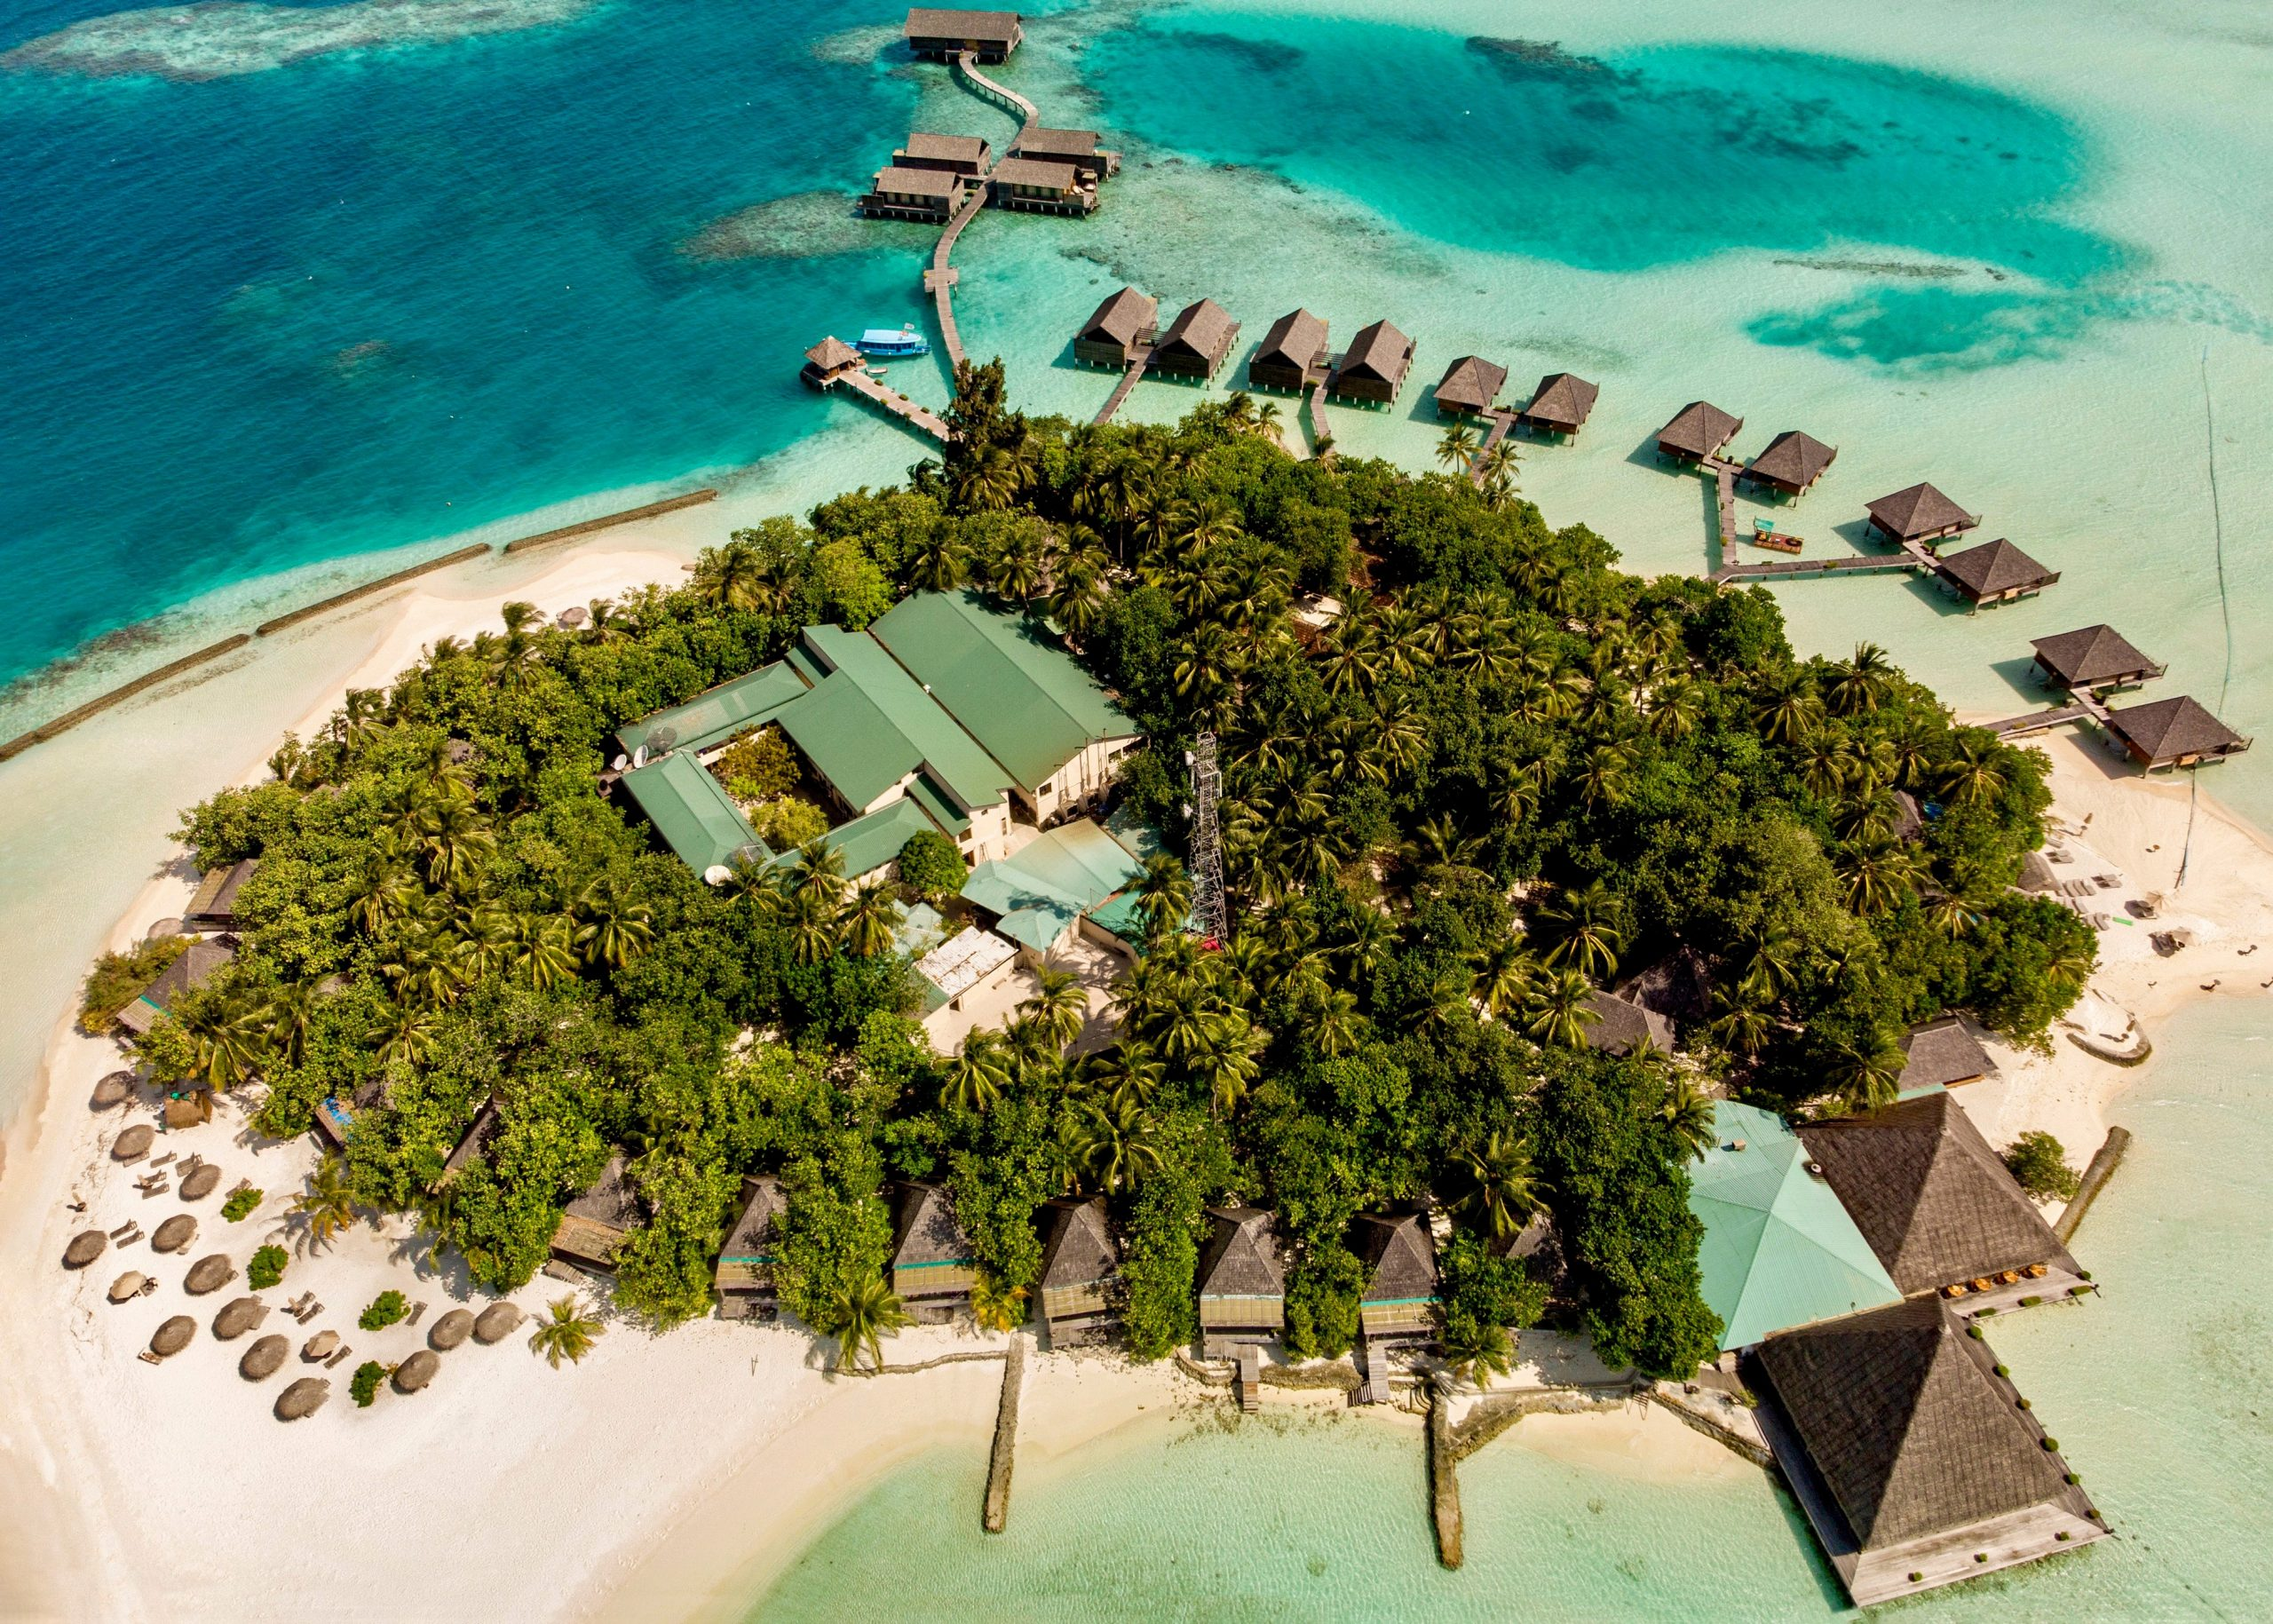 Private Island Resort Maldives-aerial